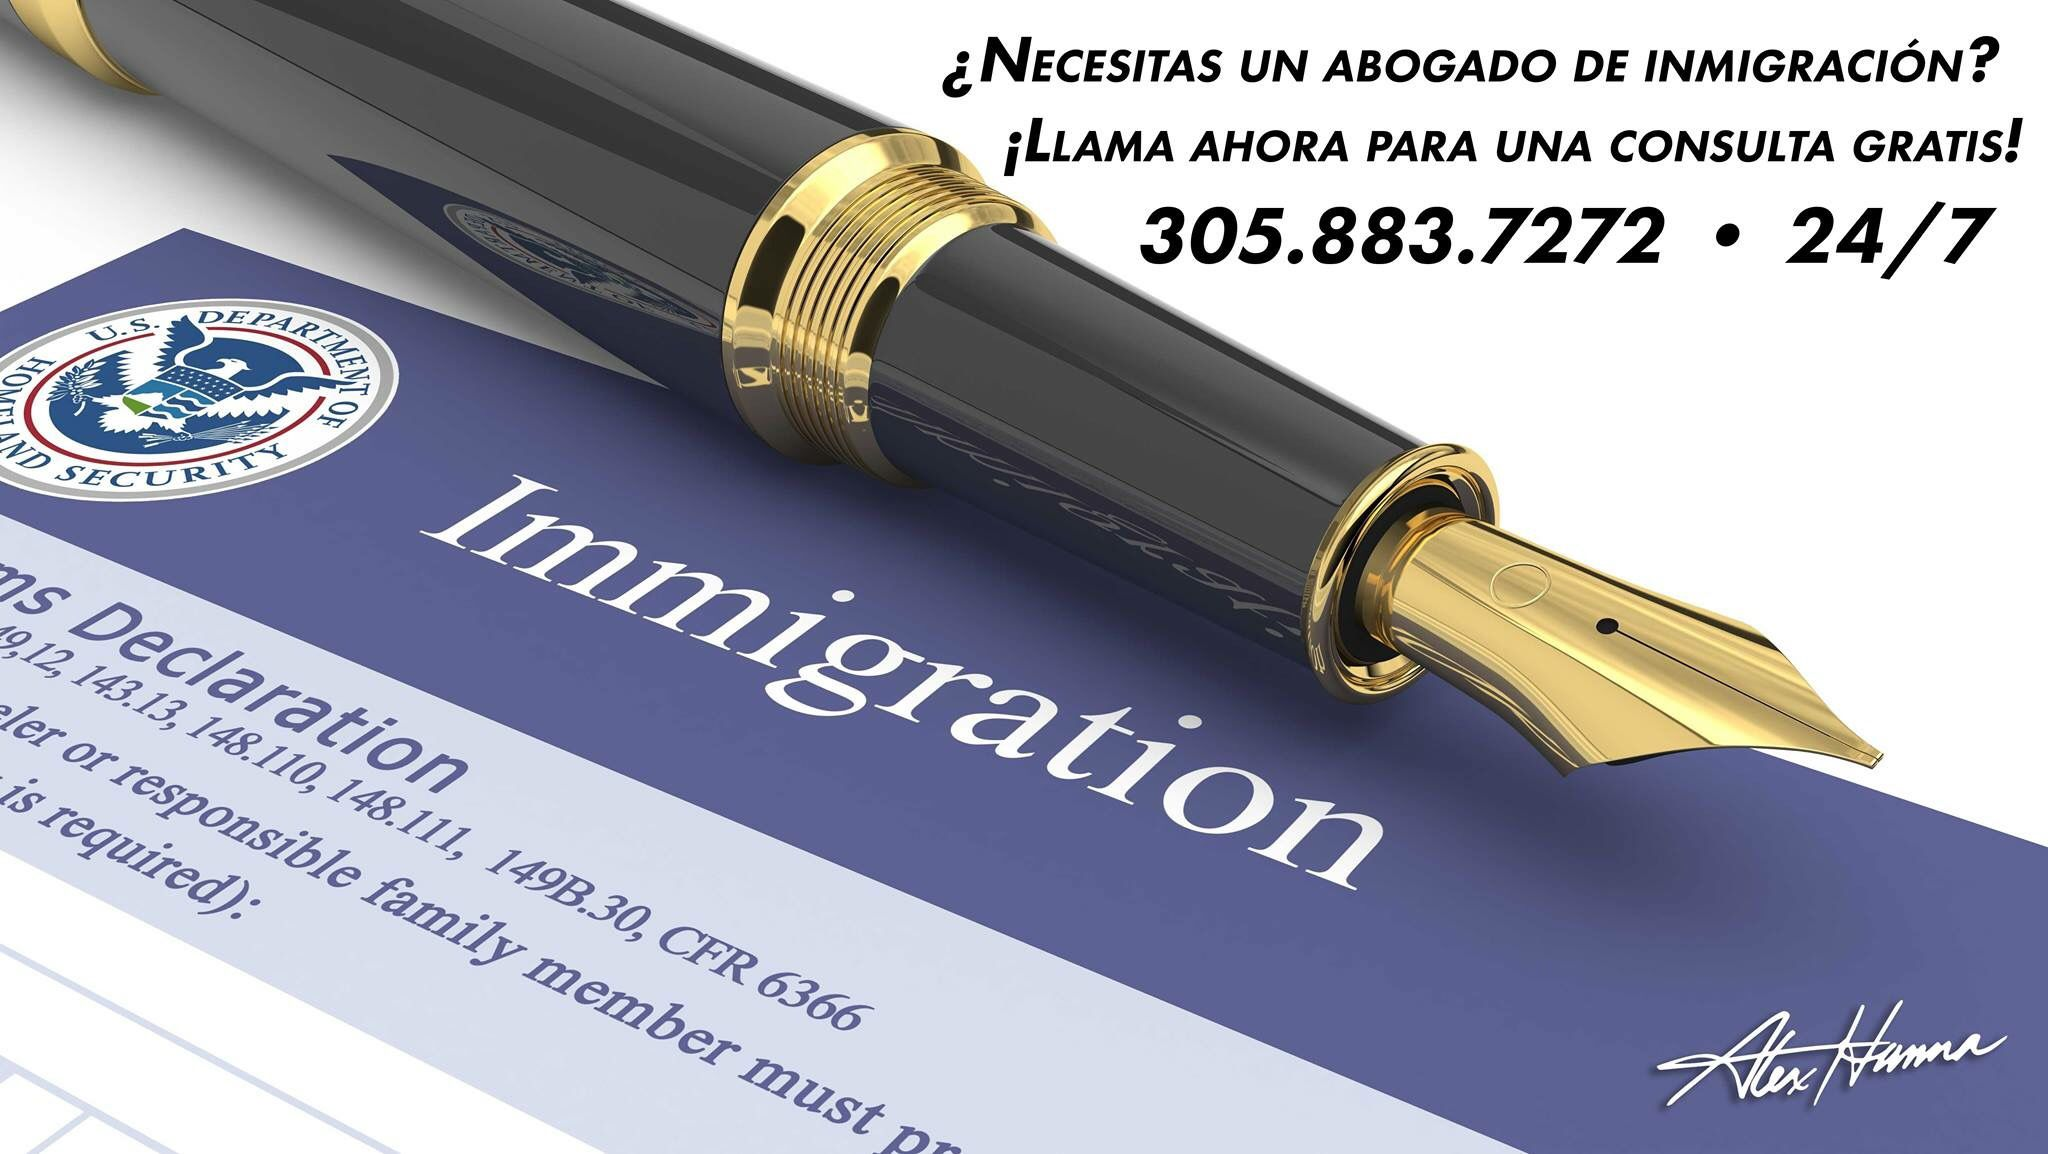 Have Immigration Questions Want To Become A U S Citizen Lawful Permanent Resident Or Claim A Family Member Call Us Now For A Free Family Law Alex Hanna Dui